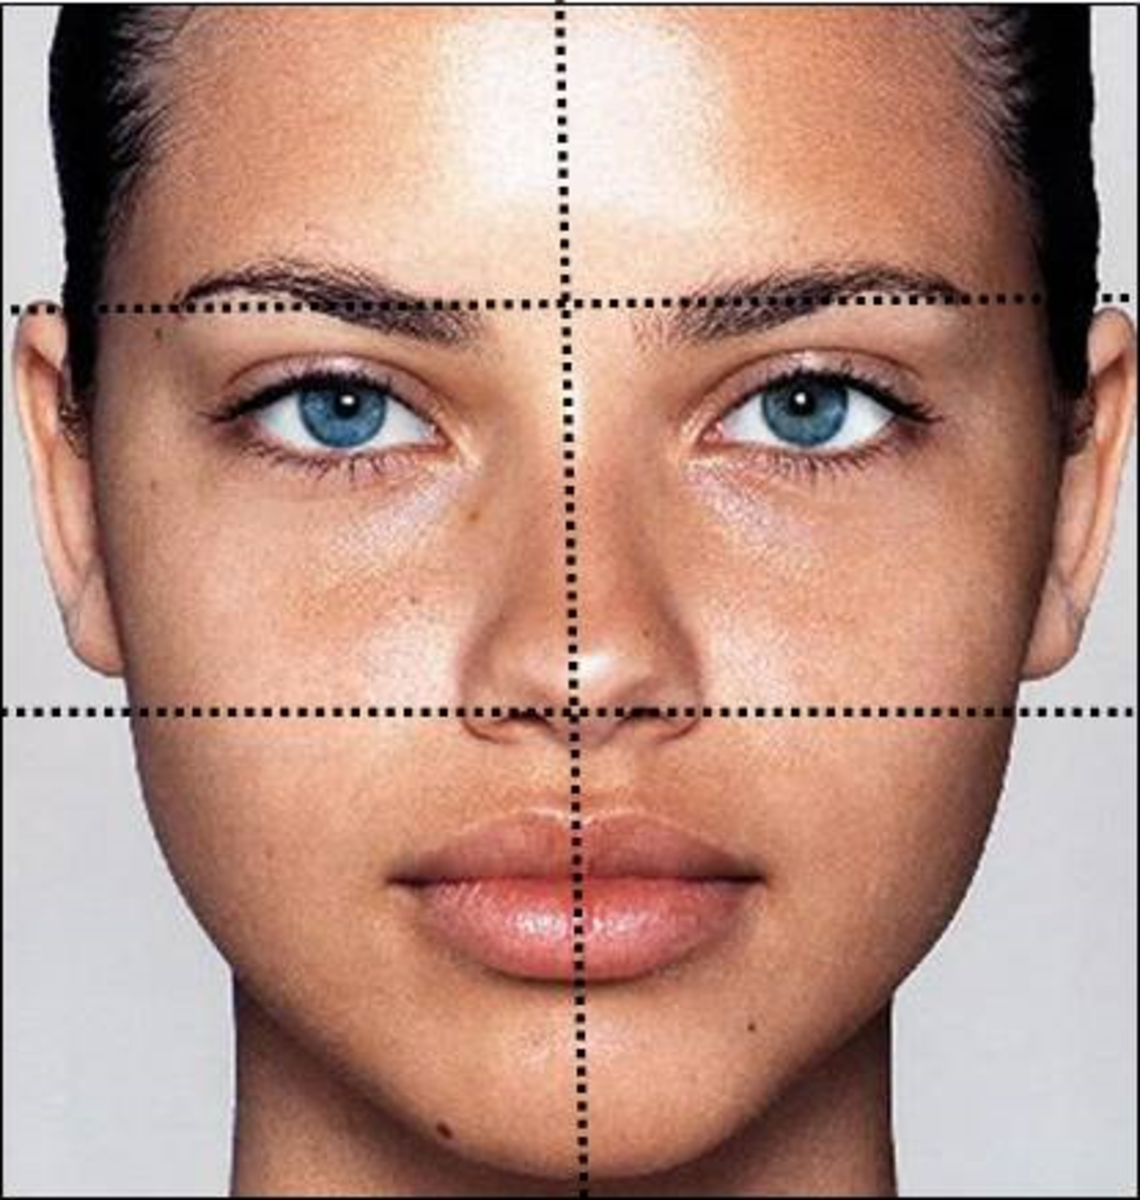 Apply Makeup in Sections